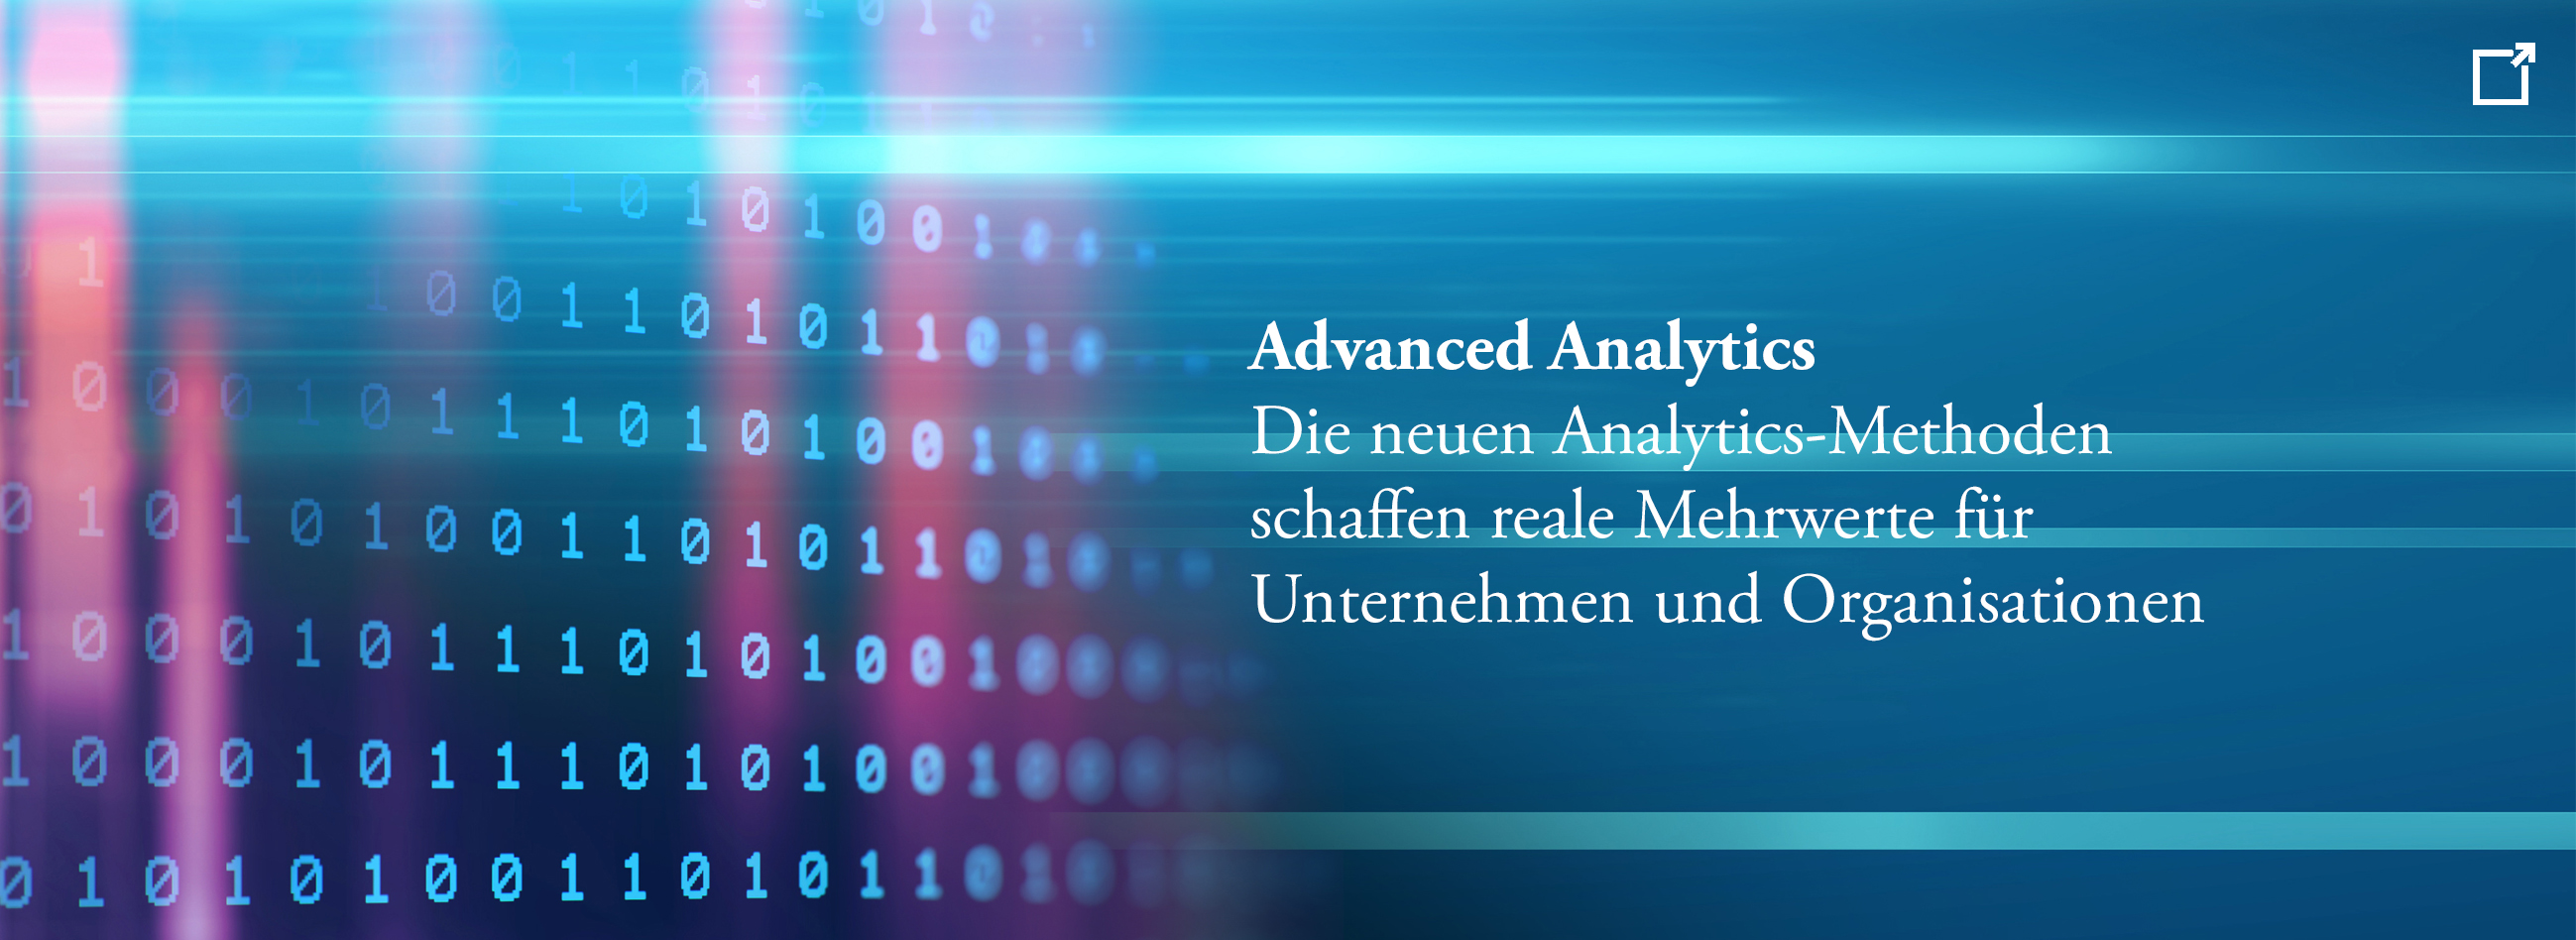 Datenstrategie, Künstliche Intelligenz, Data Governance, Big Data, Process Mining